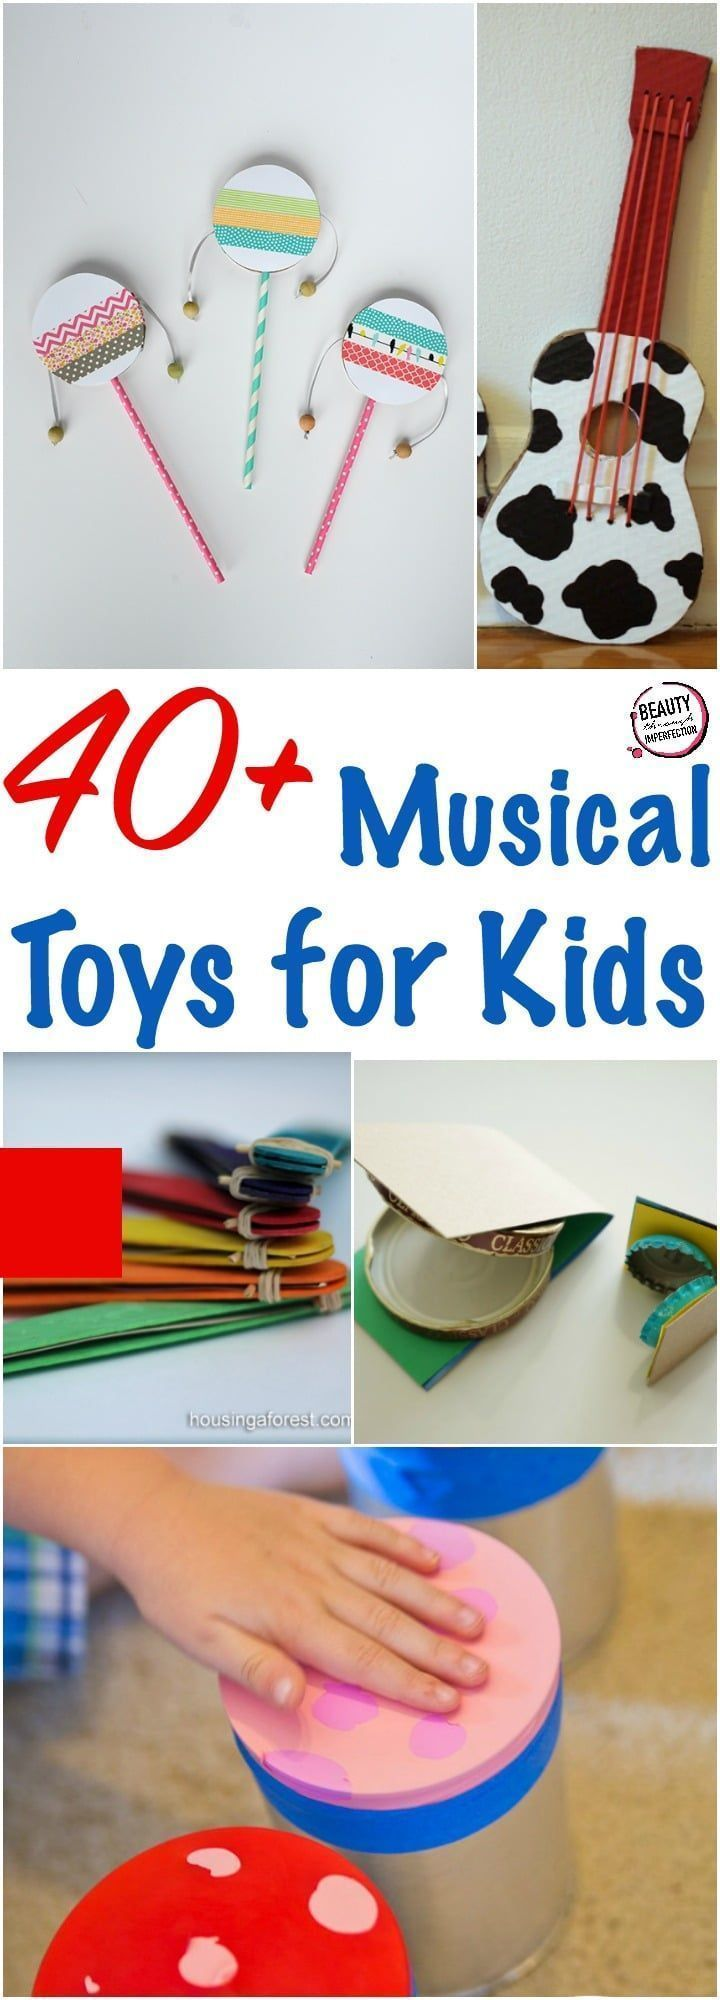 Top Musical Toys For Toddlers : Best educational toys ideas on pinterest